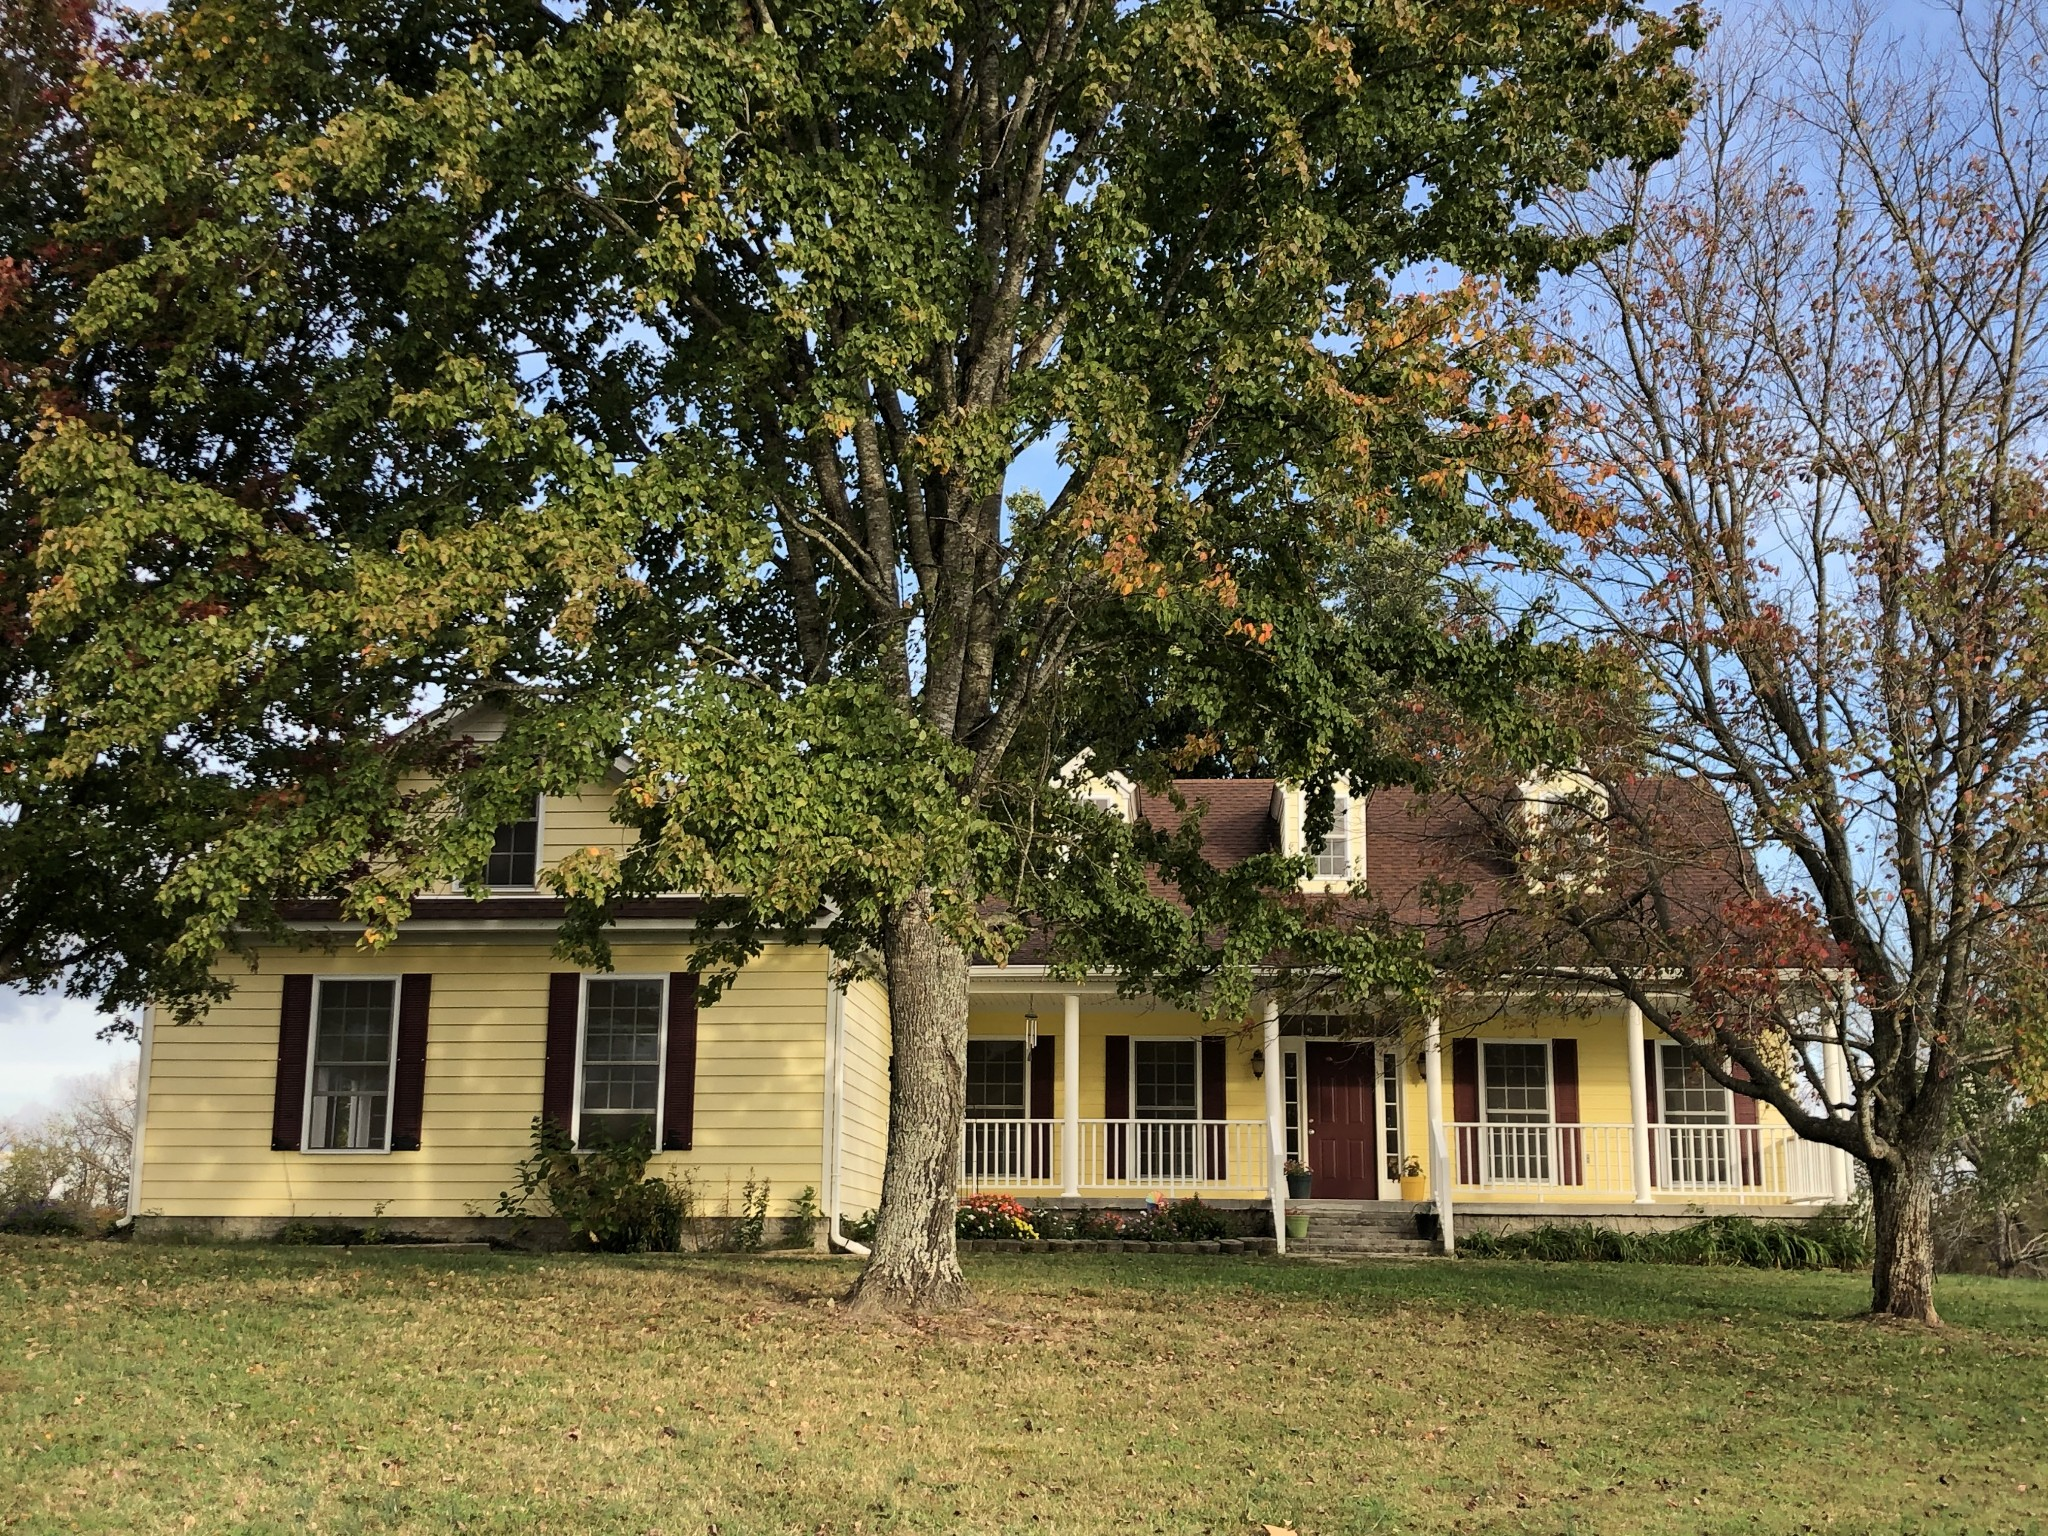 Country living on 19 acres south of Franklin in the Bethesda community but quick access to 431 and 840; rolling hills and mature trees.  Come get away from it all in this serene area!